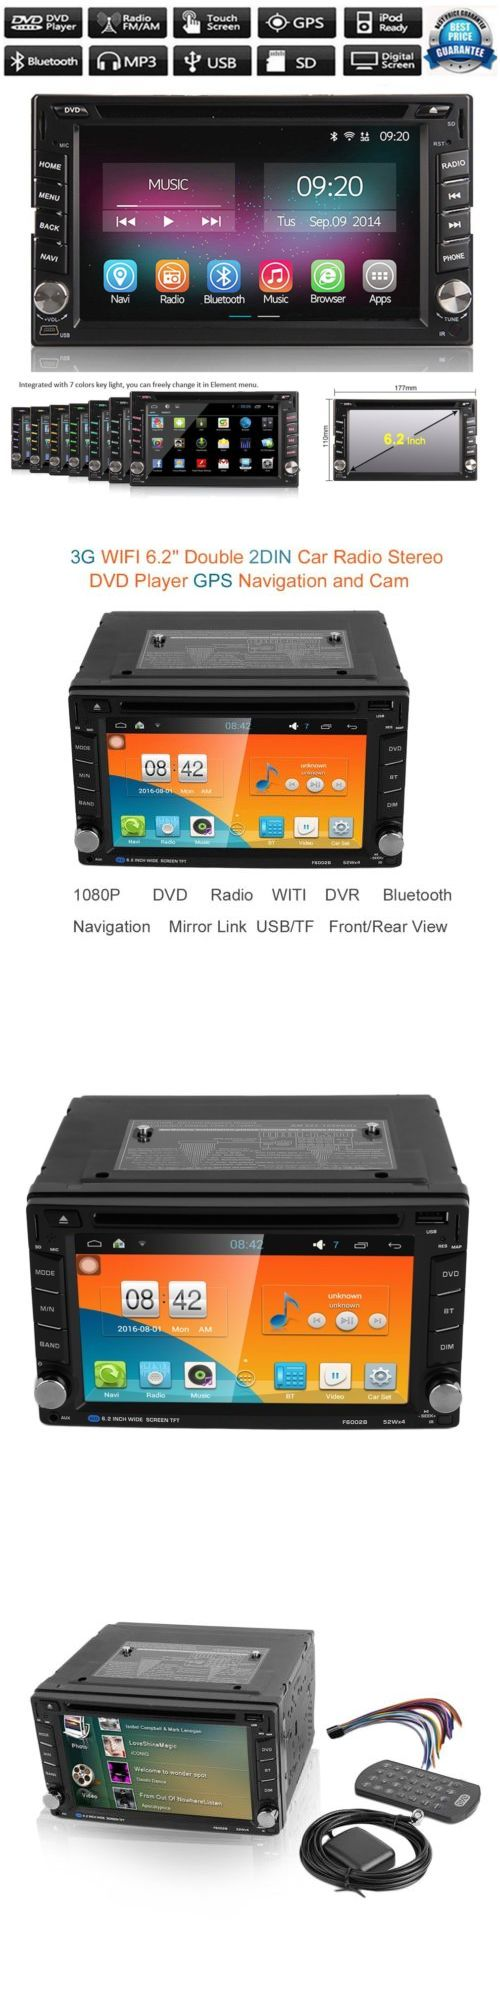 Vehicle Electronics And GPS: Android 5.1 Double 2 Din Car Stereo Gps Dvd Player 6.2 Bluetooth Radio 3G Wifi -> BUY IT NOW ONLY: $125.95 on eBay!